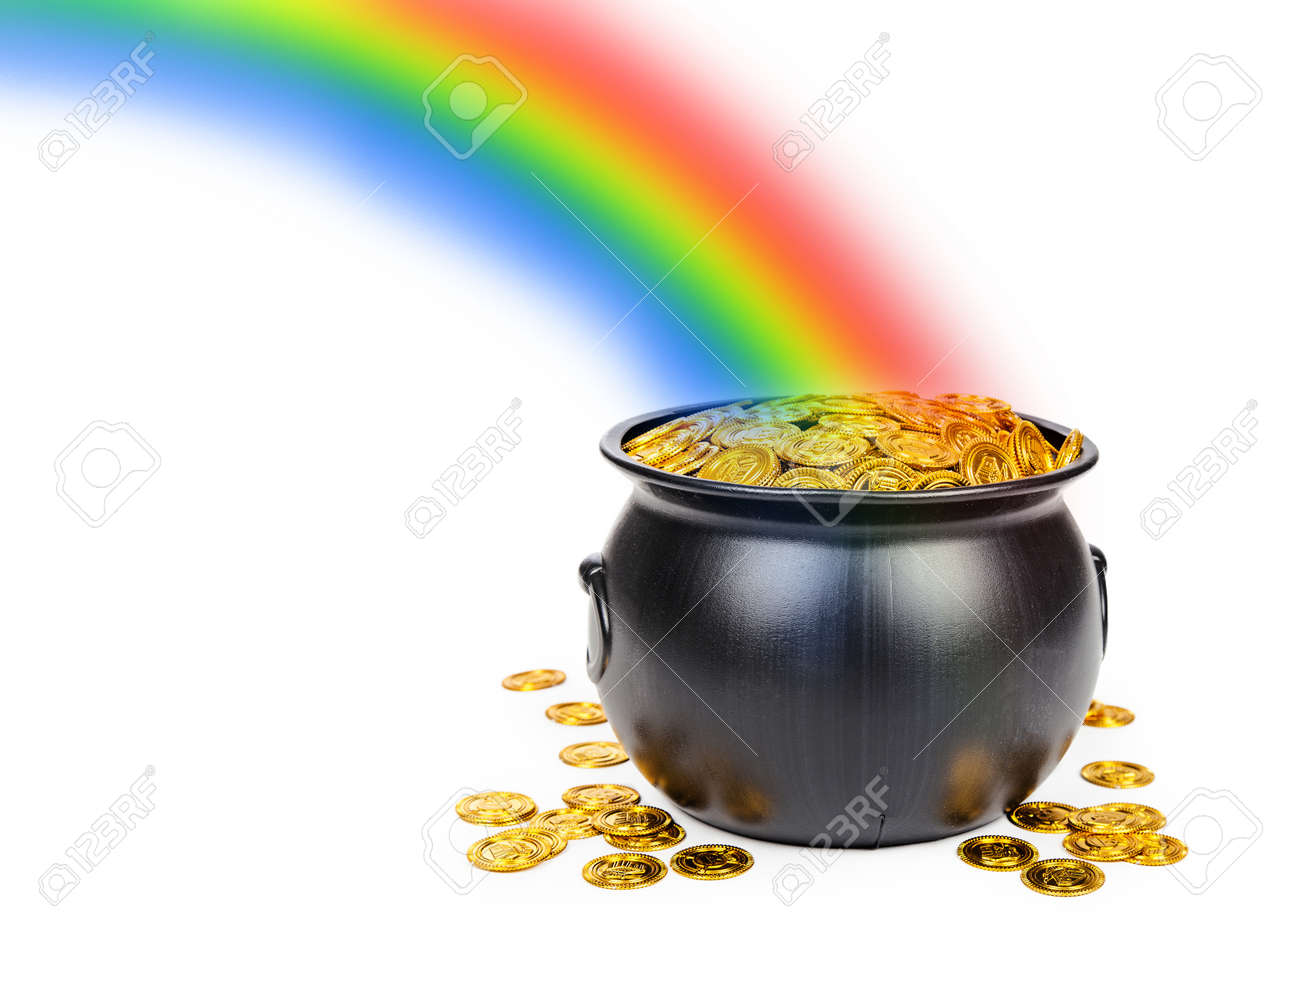 Large black pot filled with gold coins at the end of a colorful rainbow with room for text - 44381705